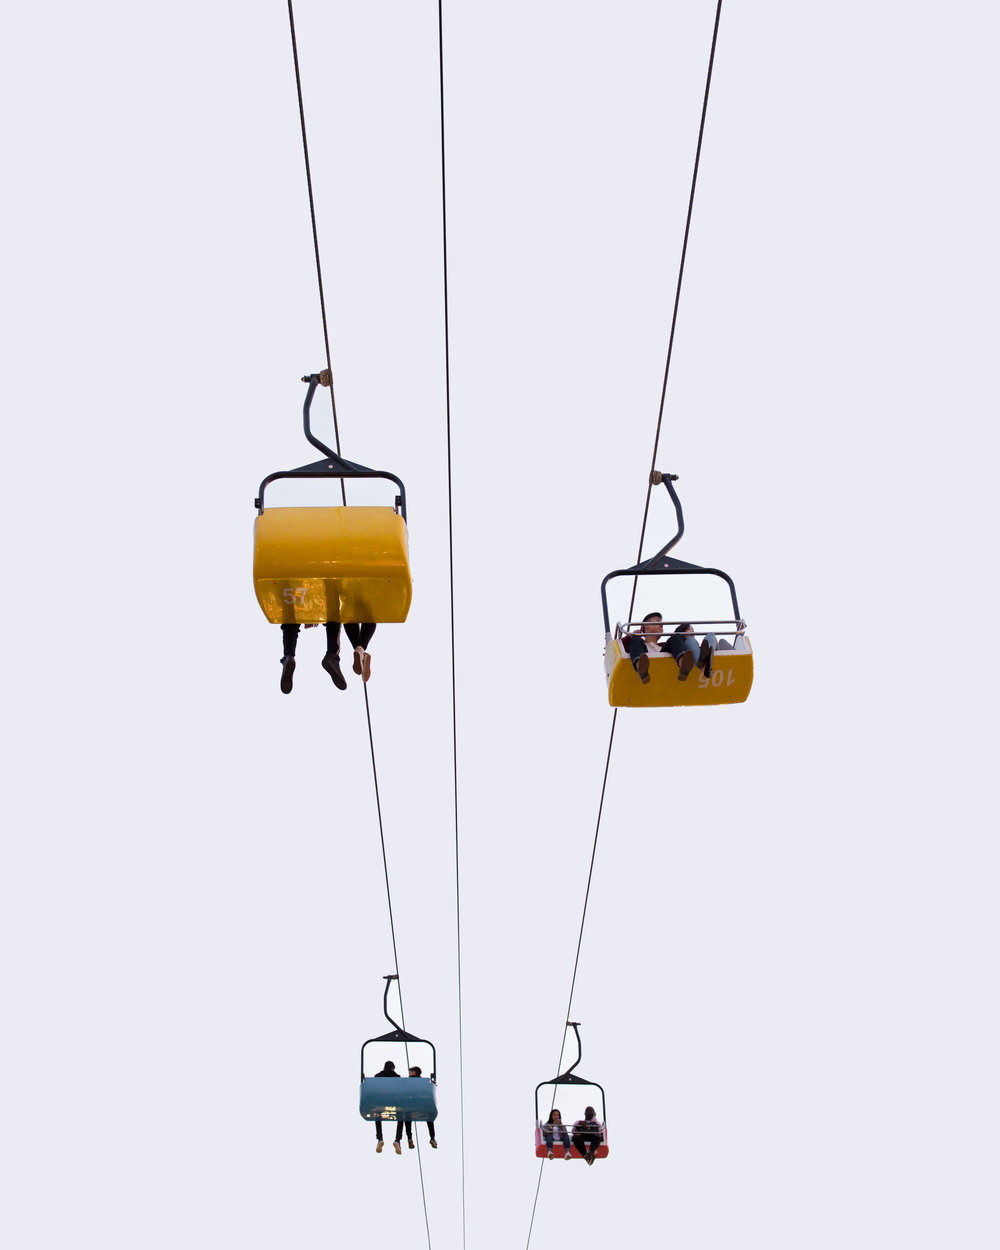 Engagement_Photography_Carnival_Fair-youthebestphotos-5.jpg